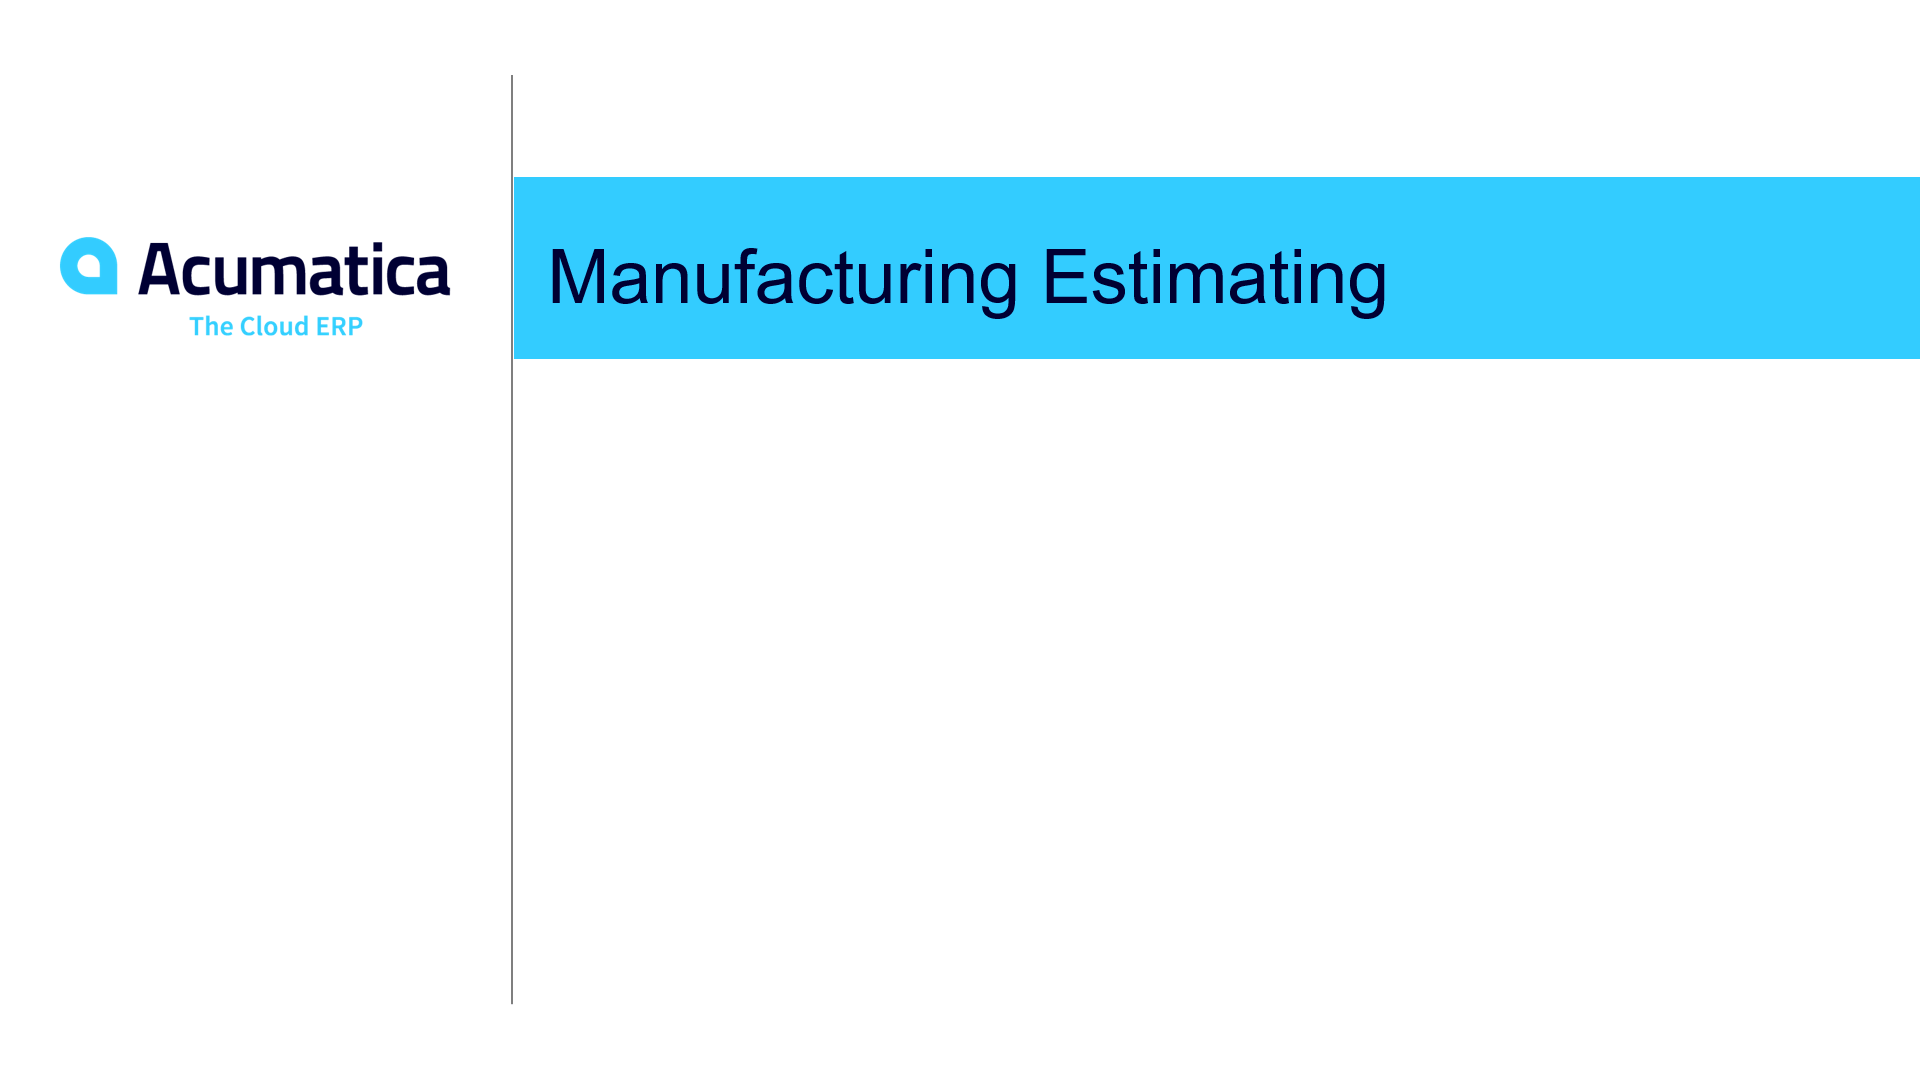 Manufacturing Estimating